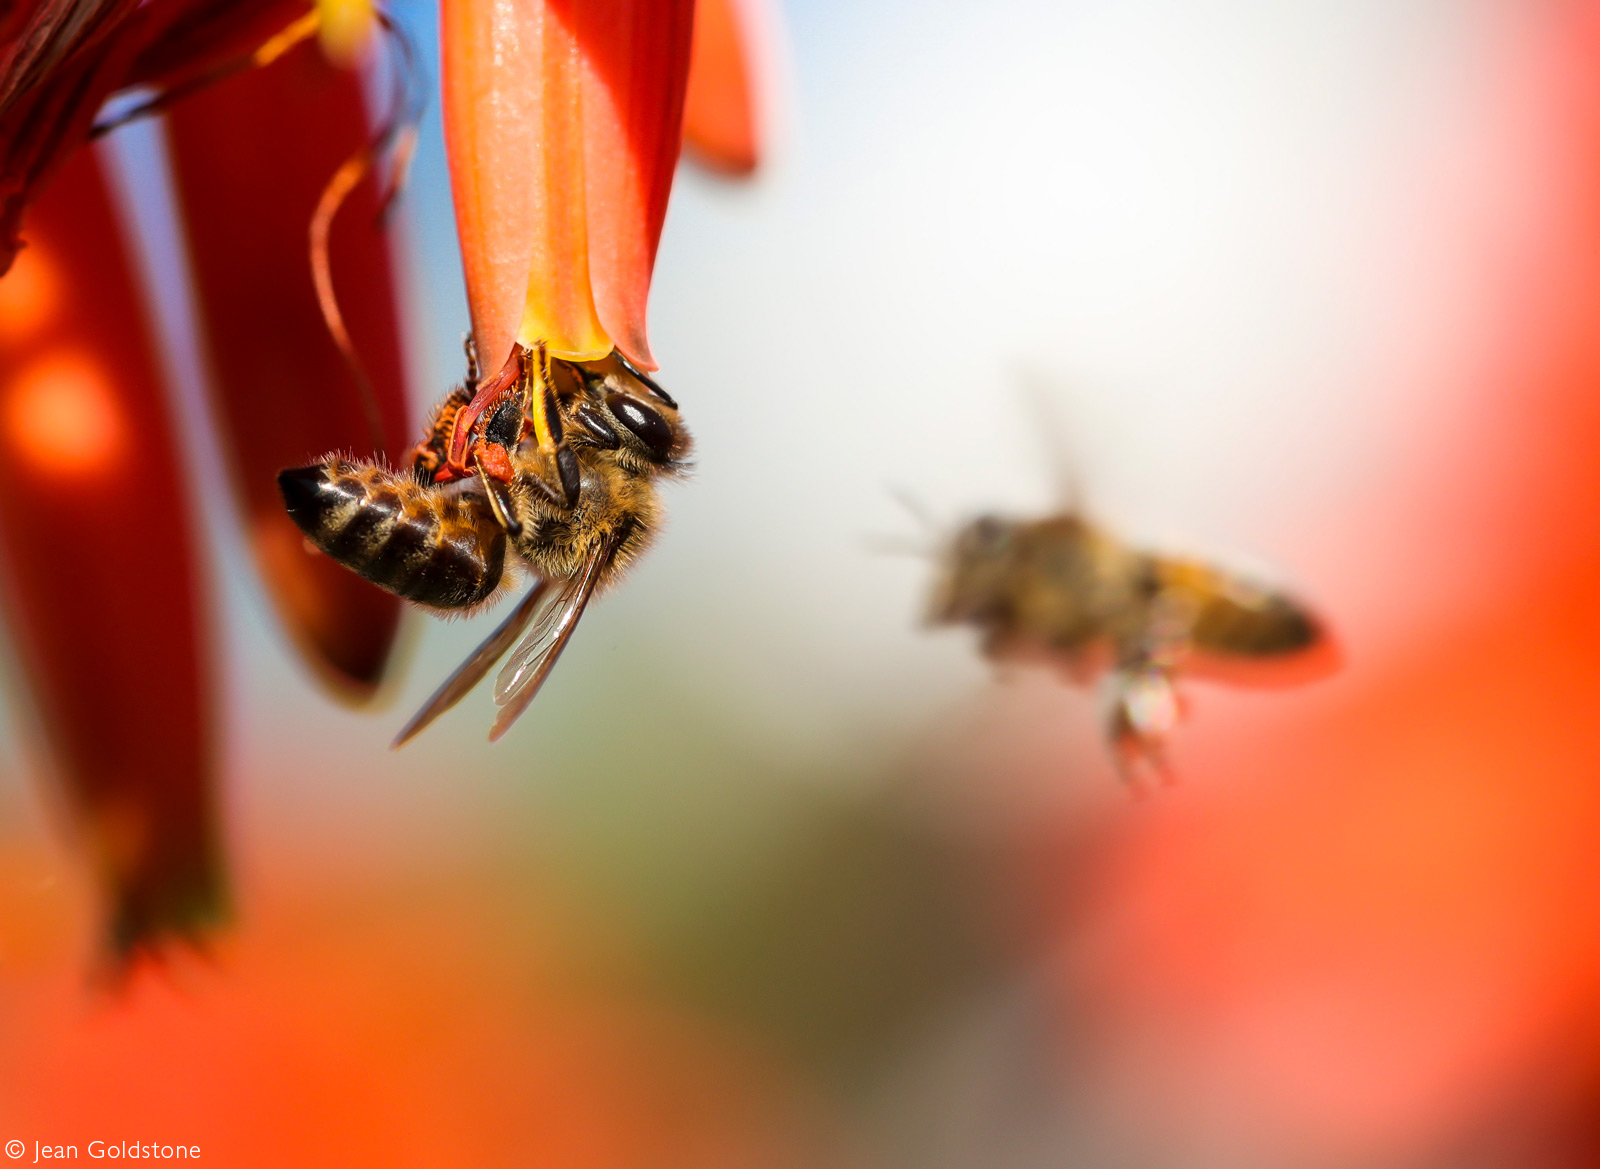 A honeybee busily collects pollen for the hive. Jeffreys Bay, South Africa © Jean Goldstone